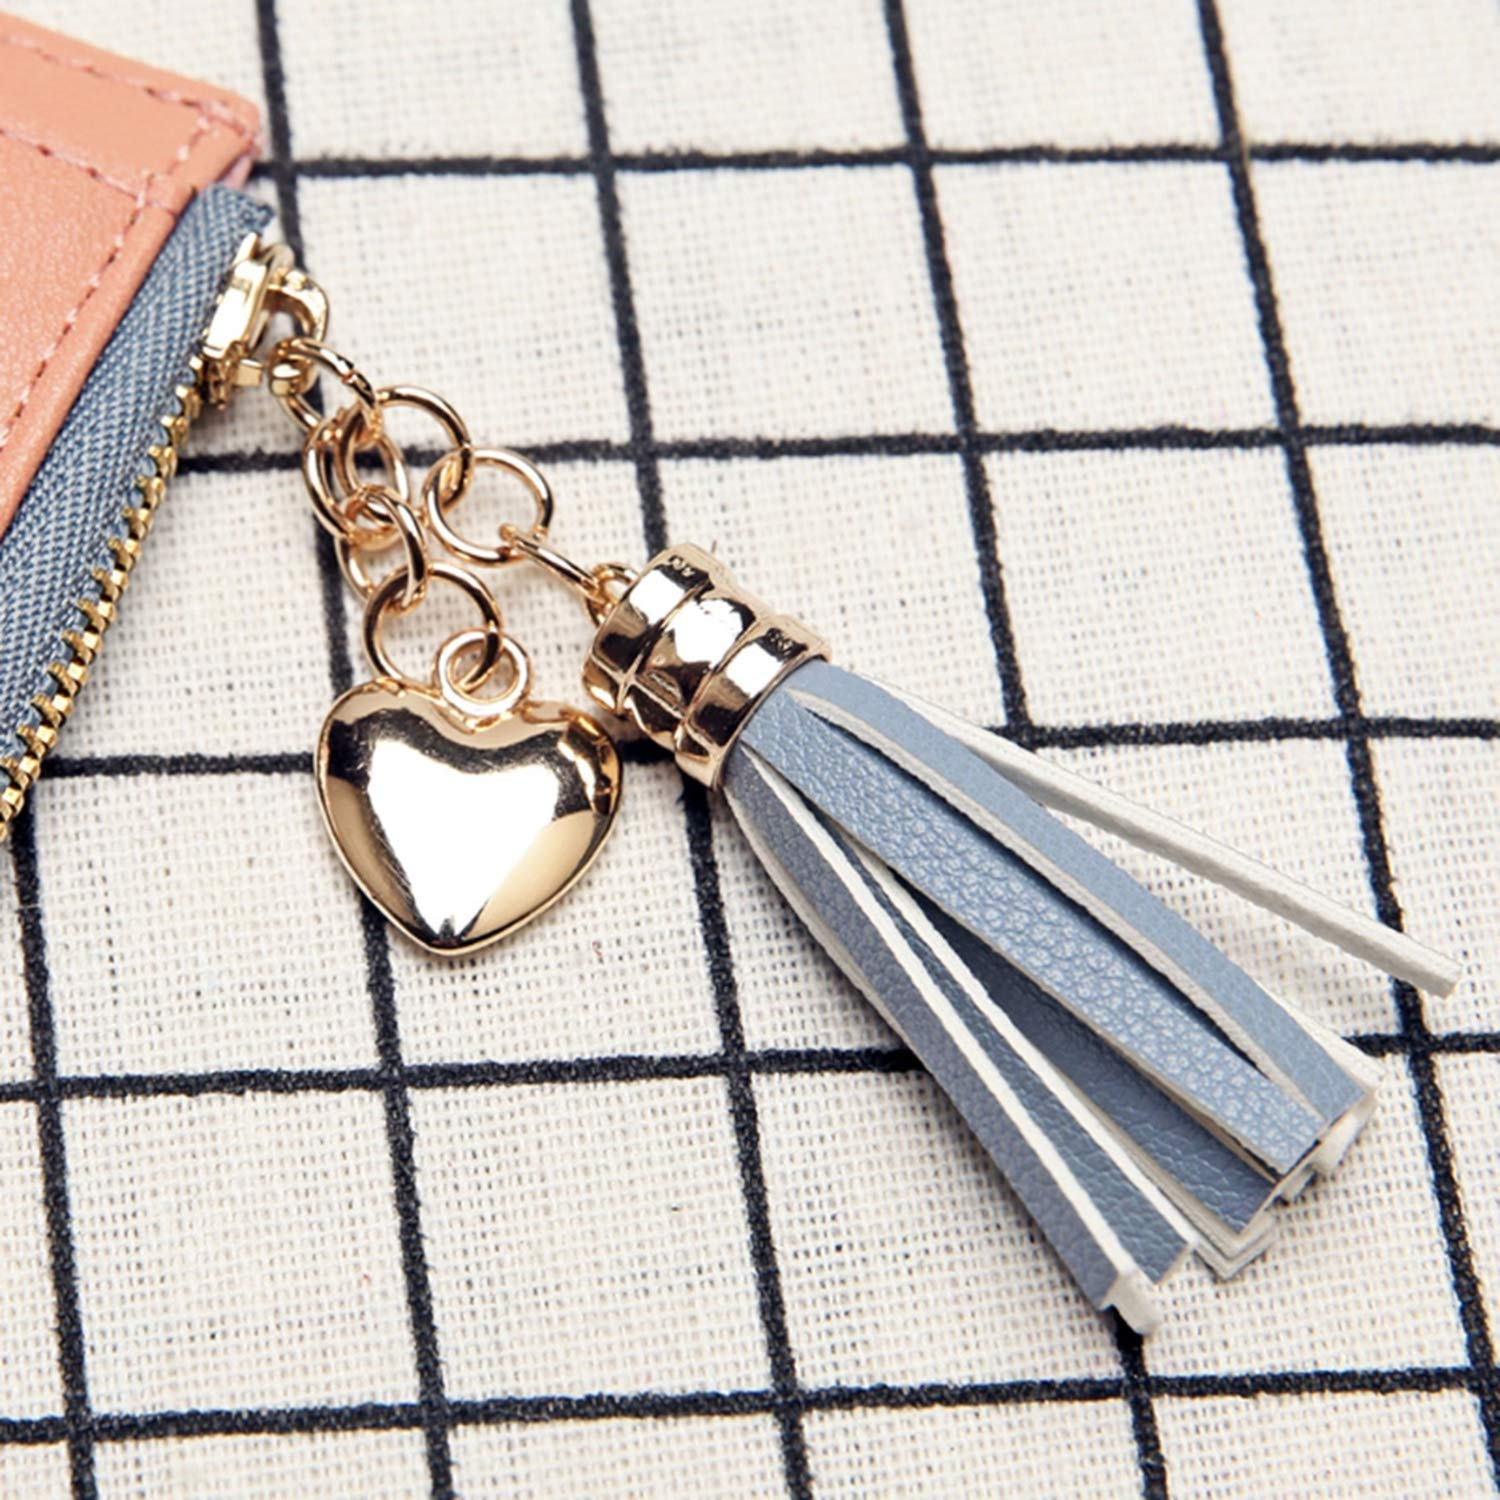 Pretty-GENTLE 5 Color New Money Clips Women Tassel Coin Bag Leather Lady Simple Bifold Small Purse Mini